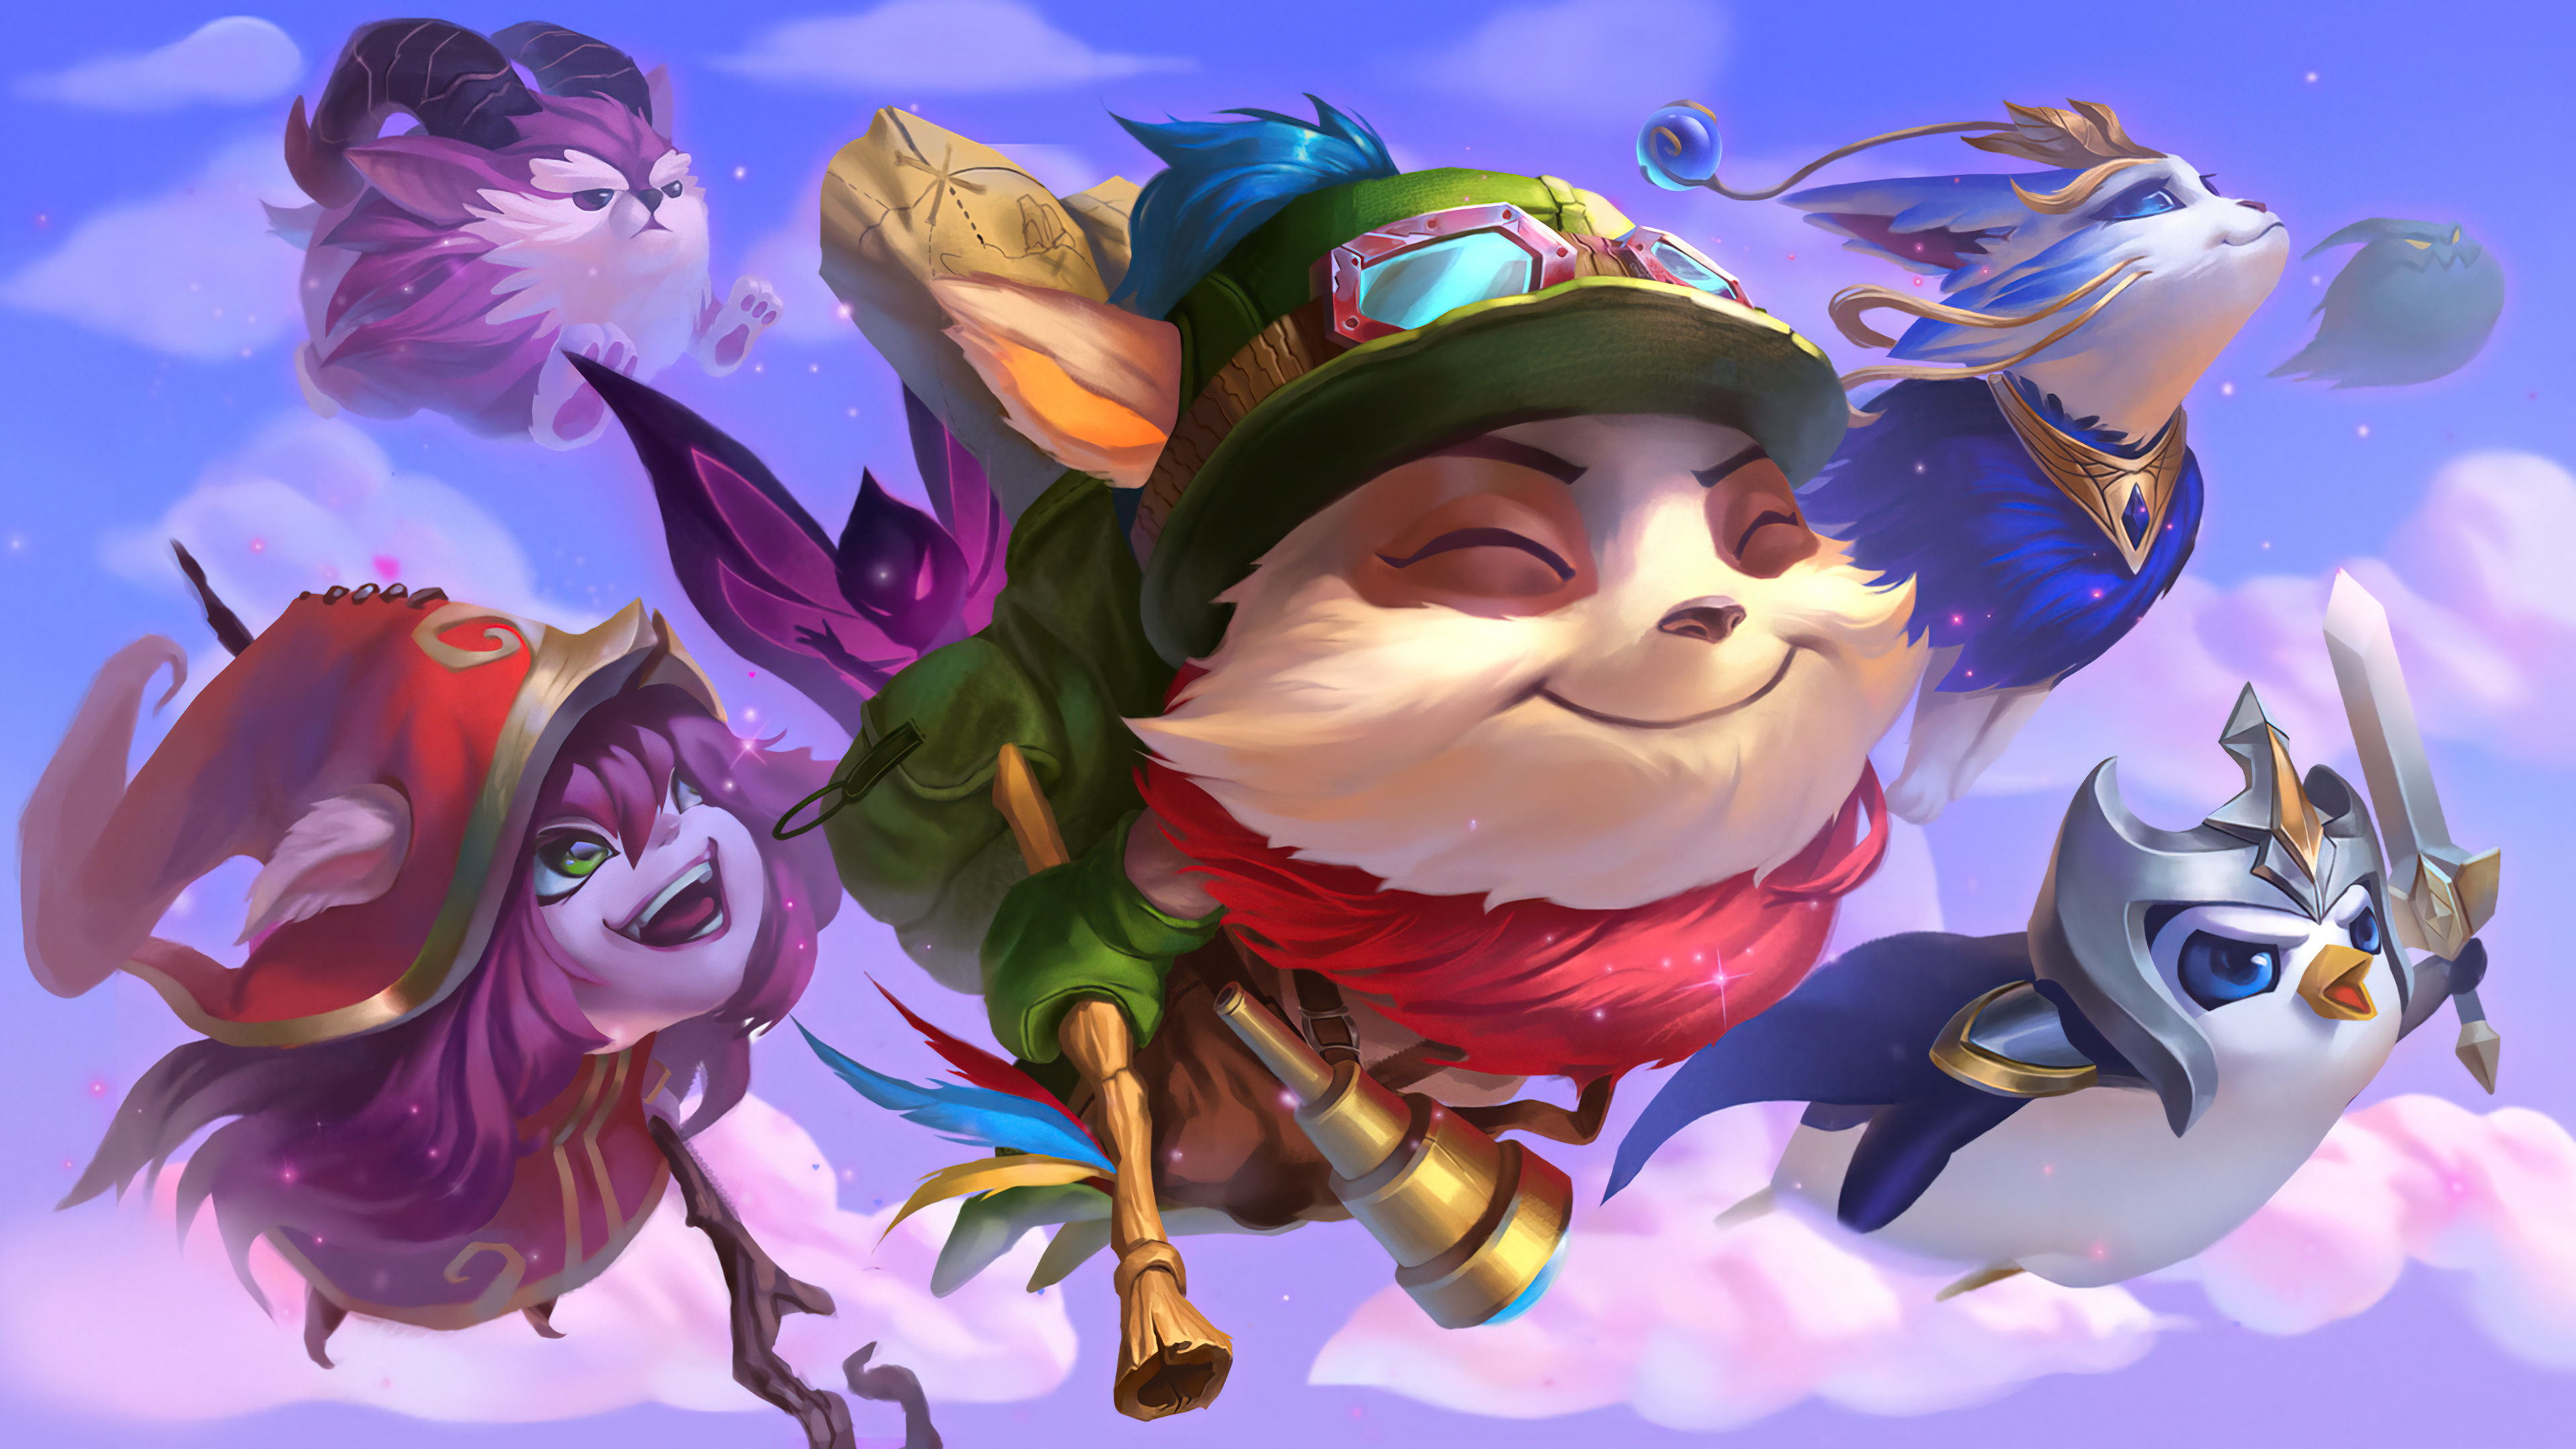 Wallpaper Teemo and Lulu from League of Legends